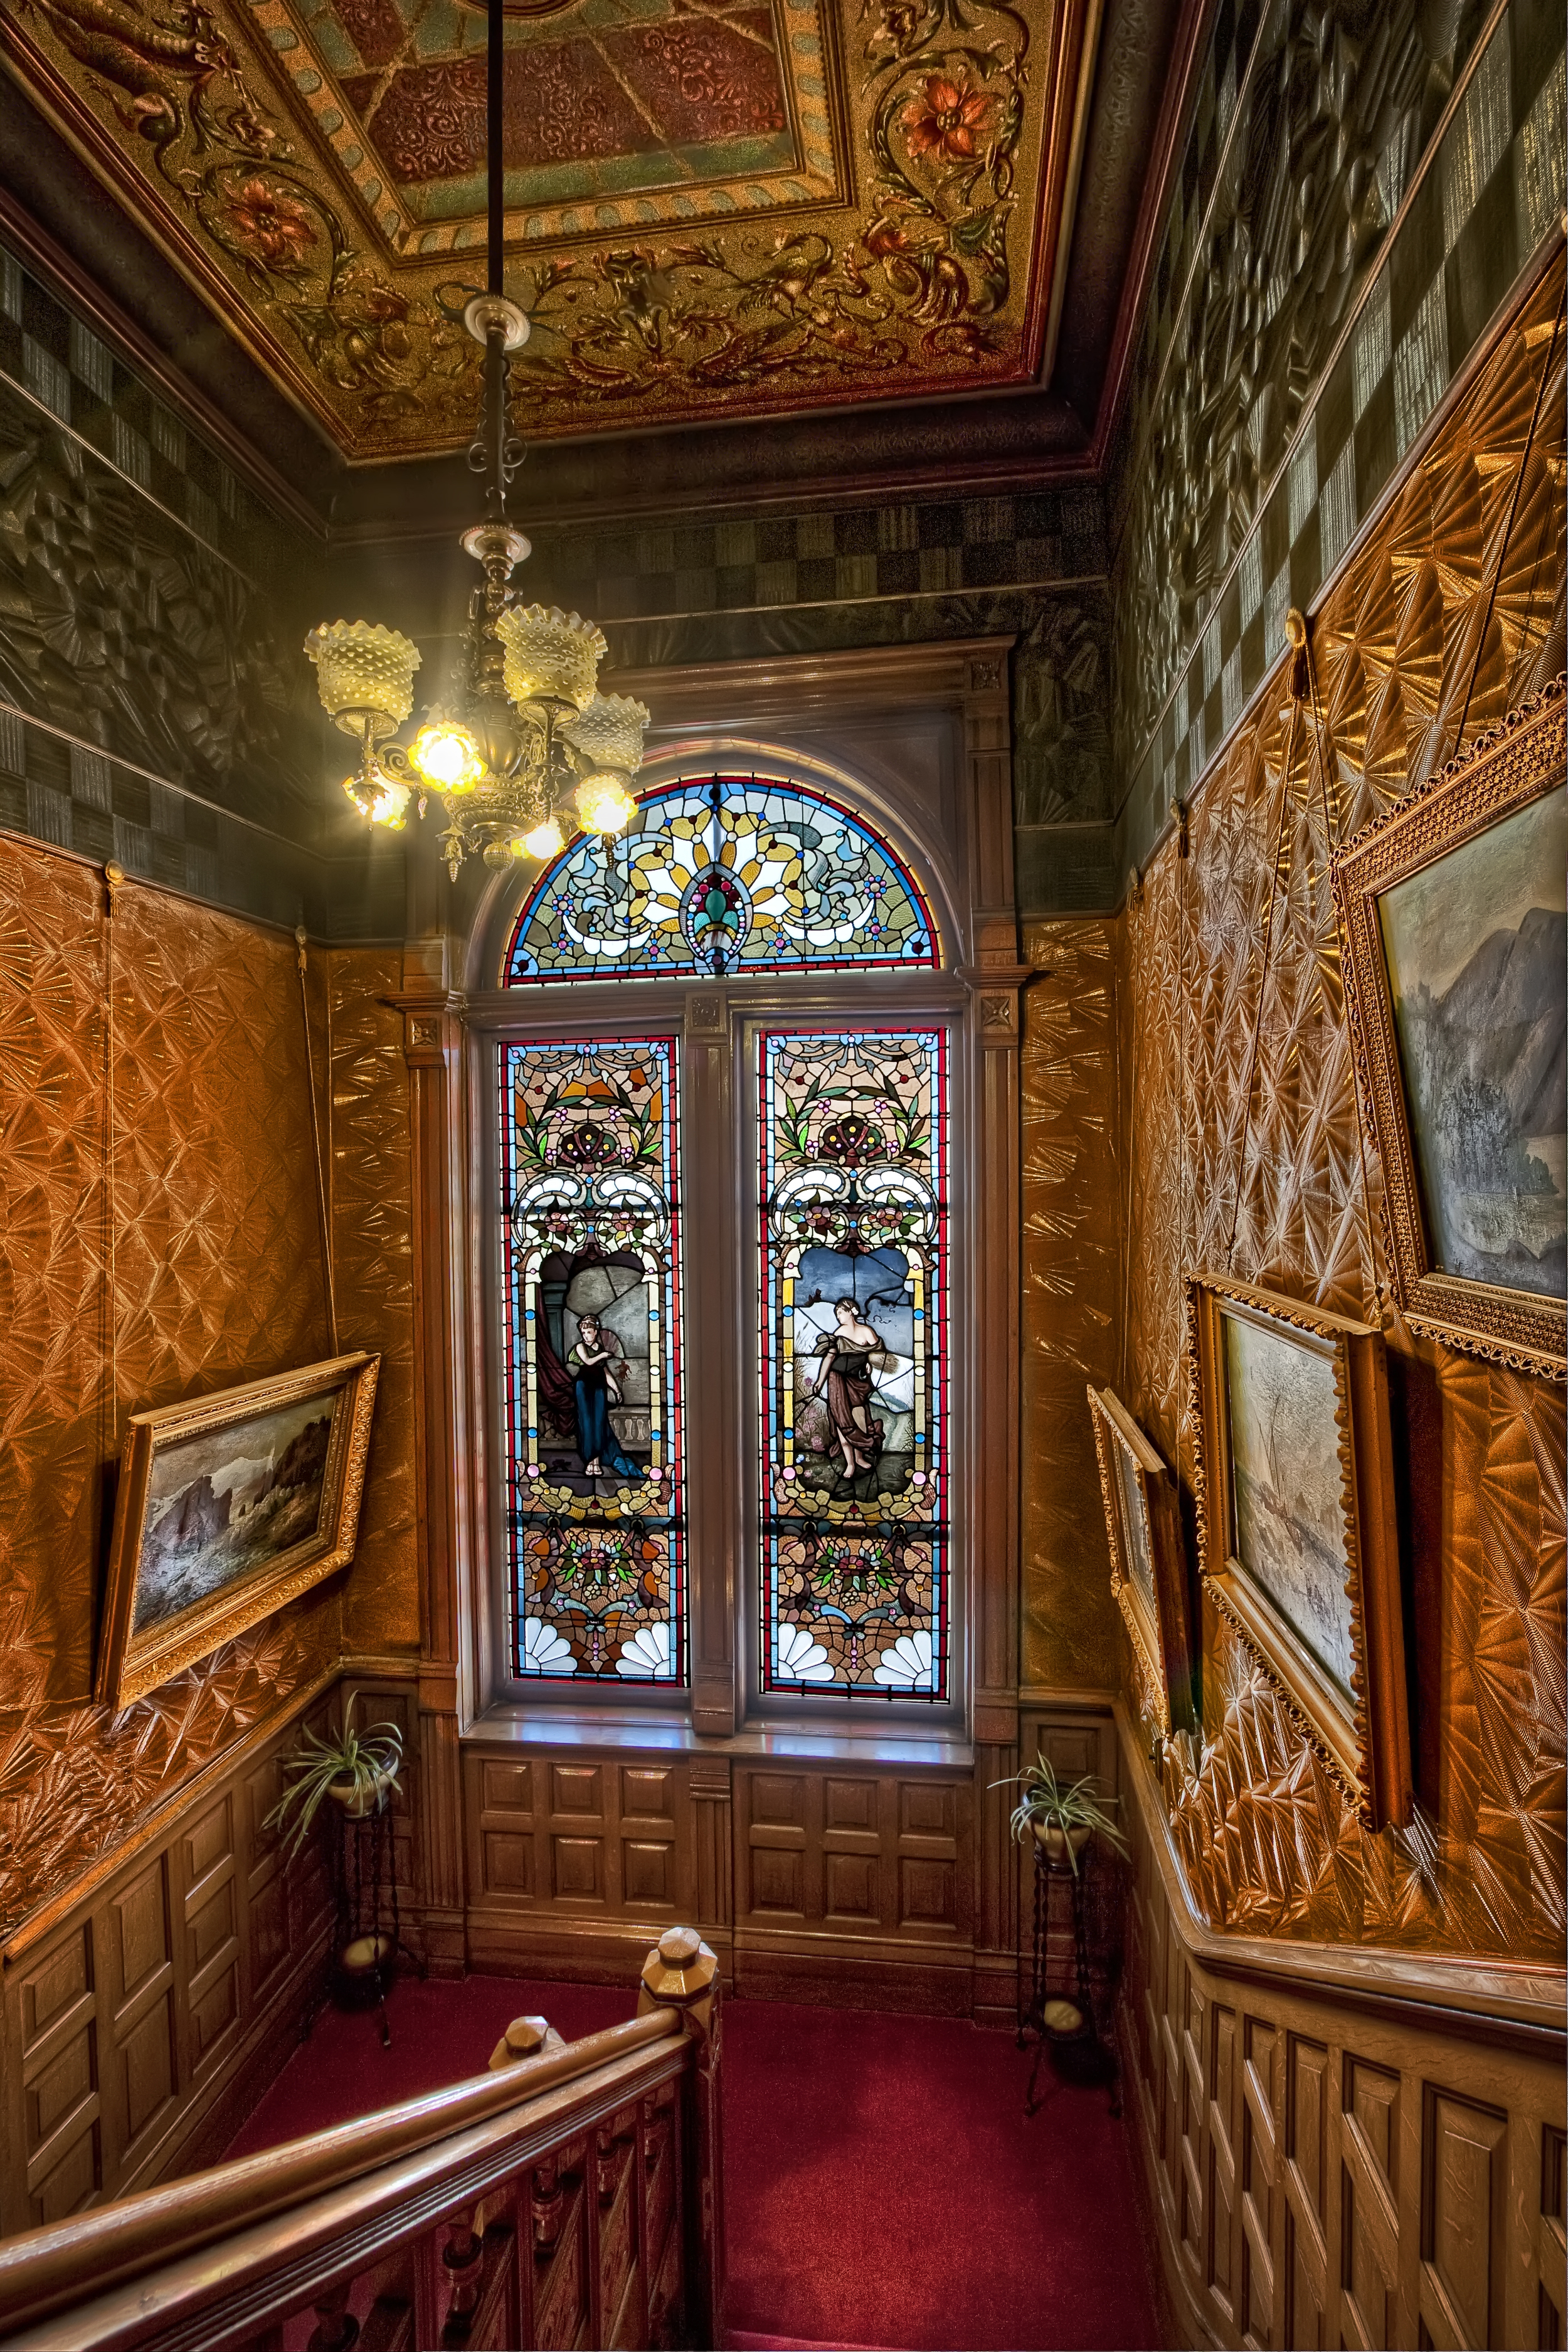 Stained glass, grand staircase, Copper King Mansion, the W.A. Clark home in Butte, Montana. c. Daniel Hagerman. Prints for sale at http://fineartamerica.com/art/all/copper+king+mansion/all.